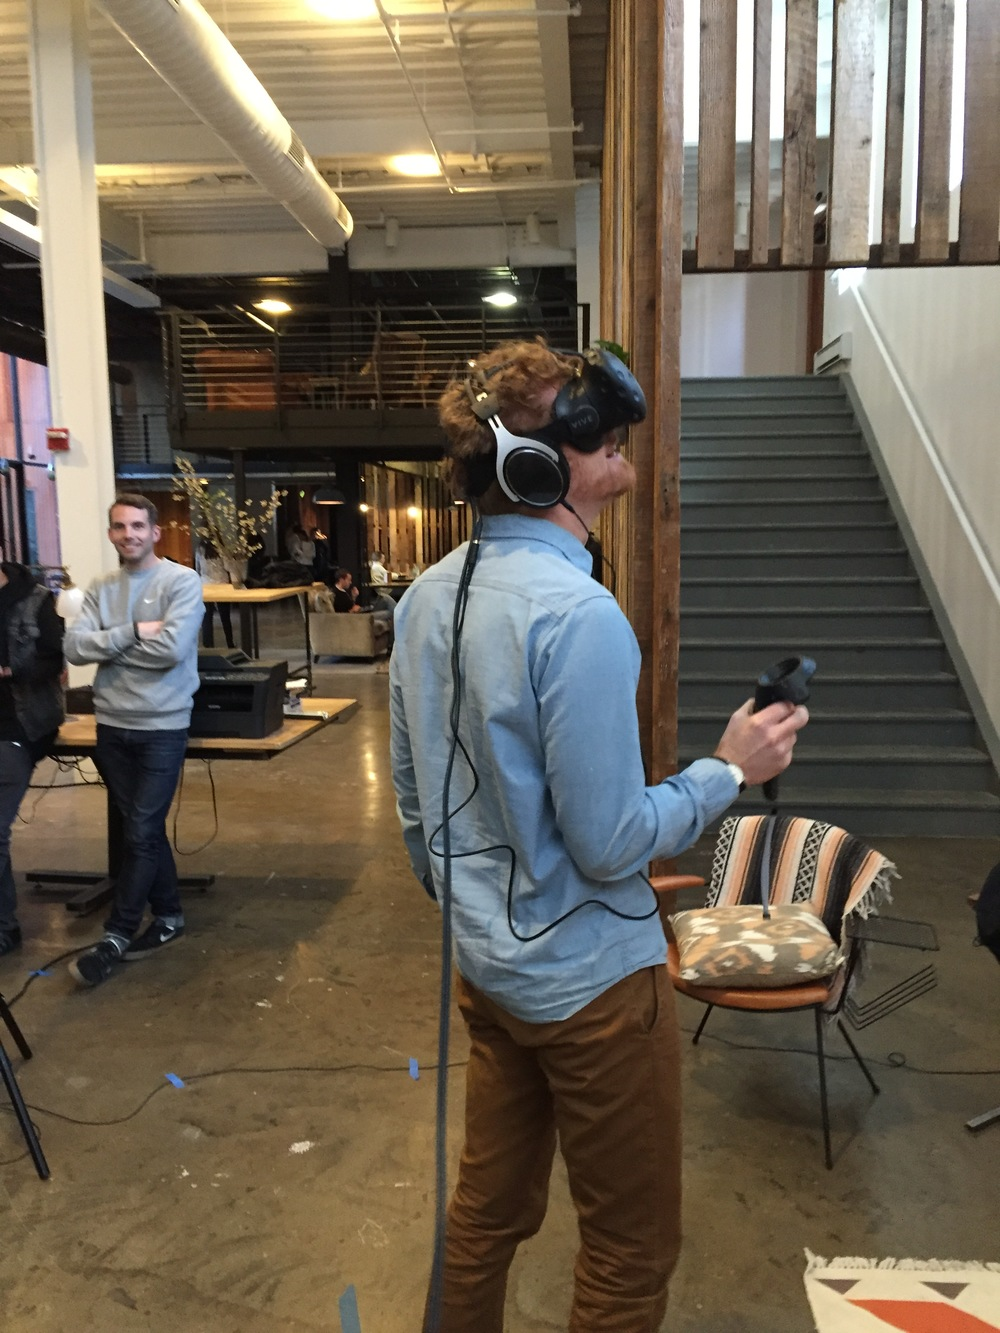 A new addition to our OSSIC Army demoing 3D audio for the first time at the Kickstarter office in Brooklyn, NY.